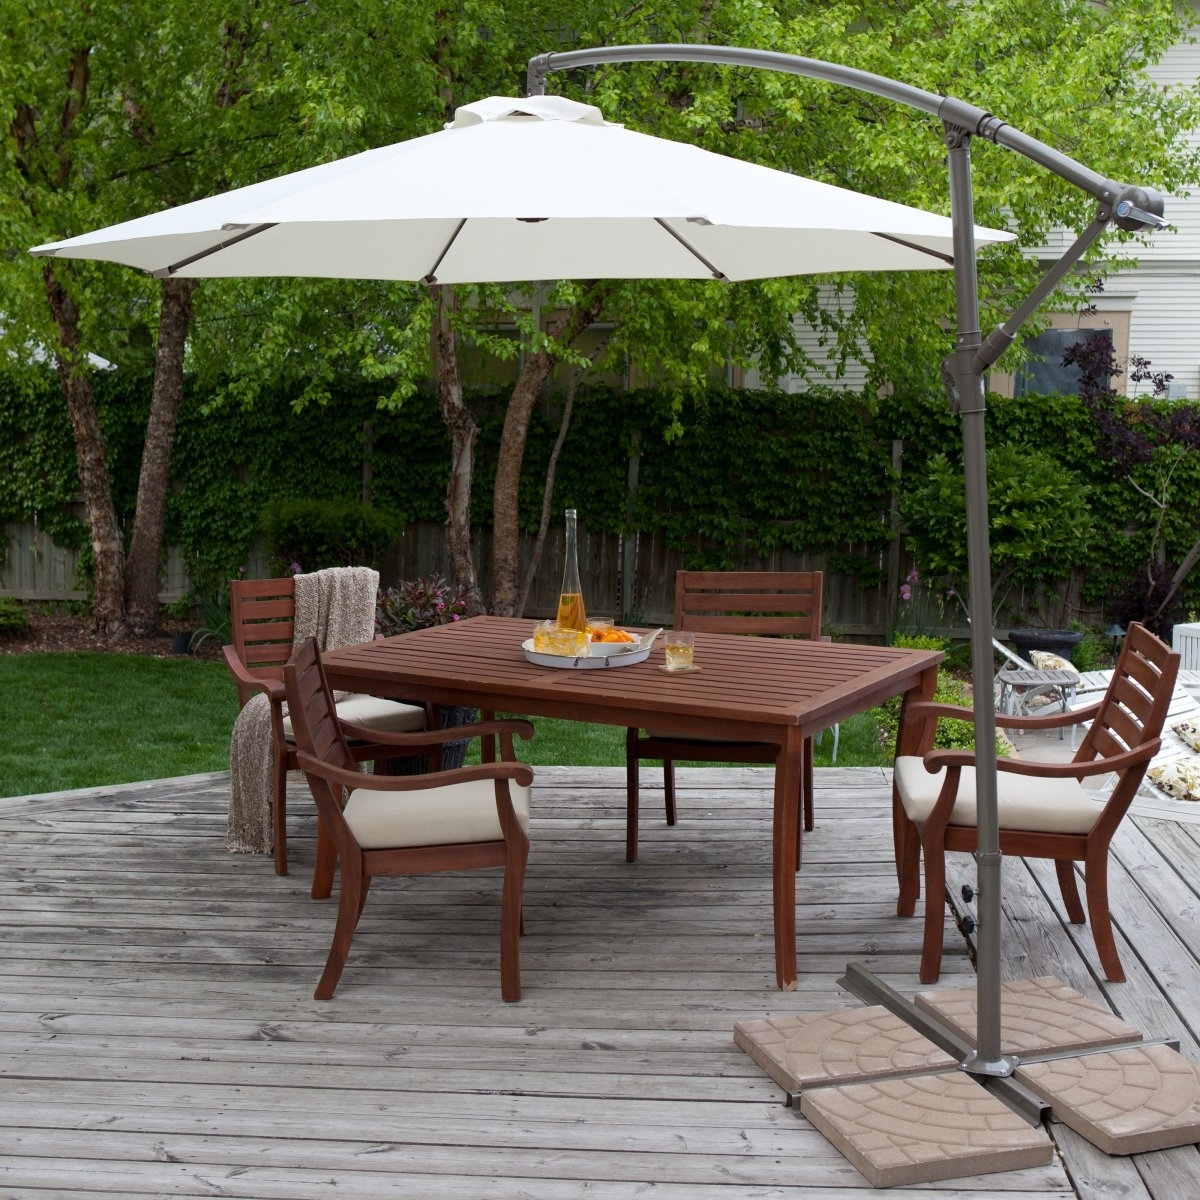 The Patio Table Umbrella For Comfort Gathering — Mistikcamping Home With Well Liked Sunbrella Patio Table Umbrellas (View 16 of 20)